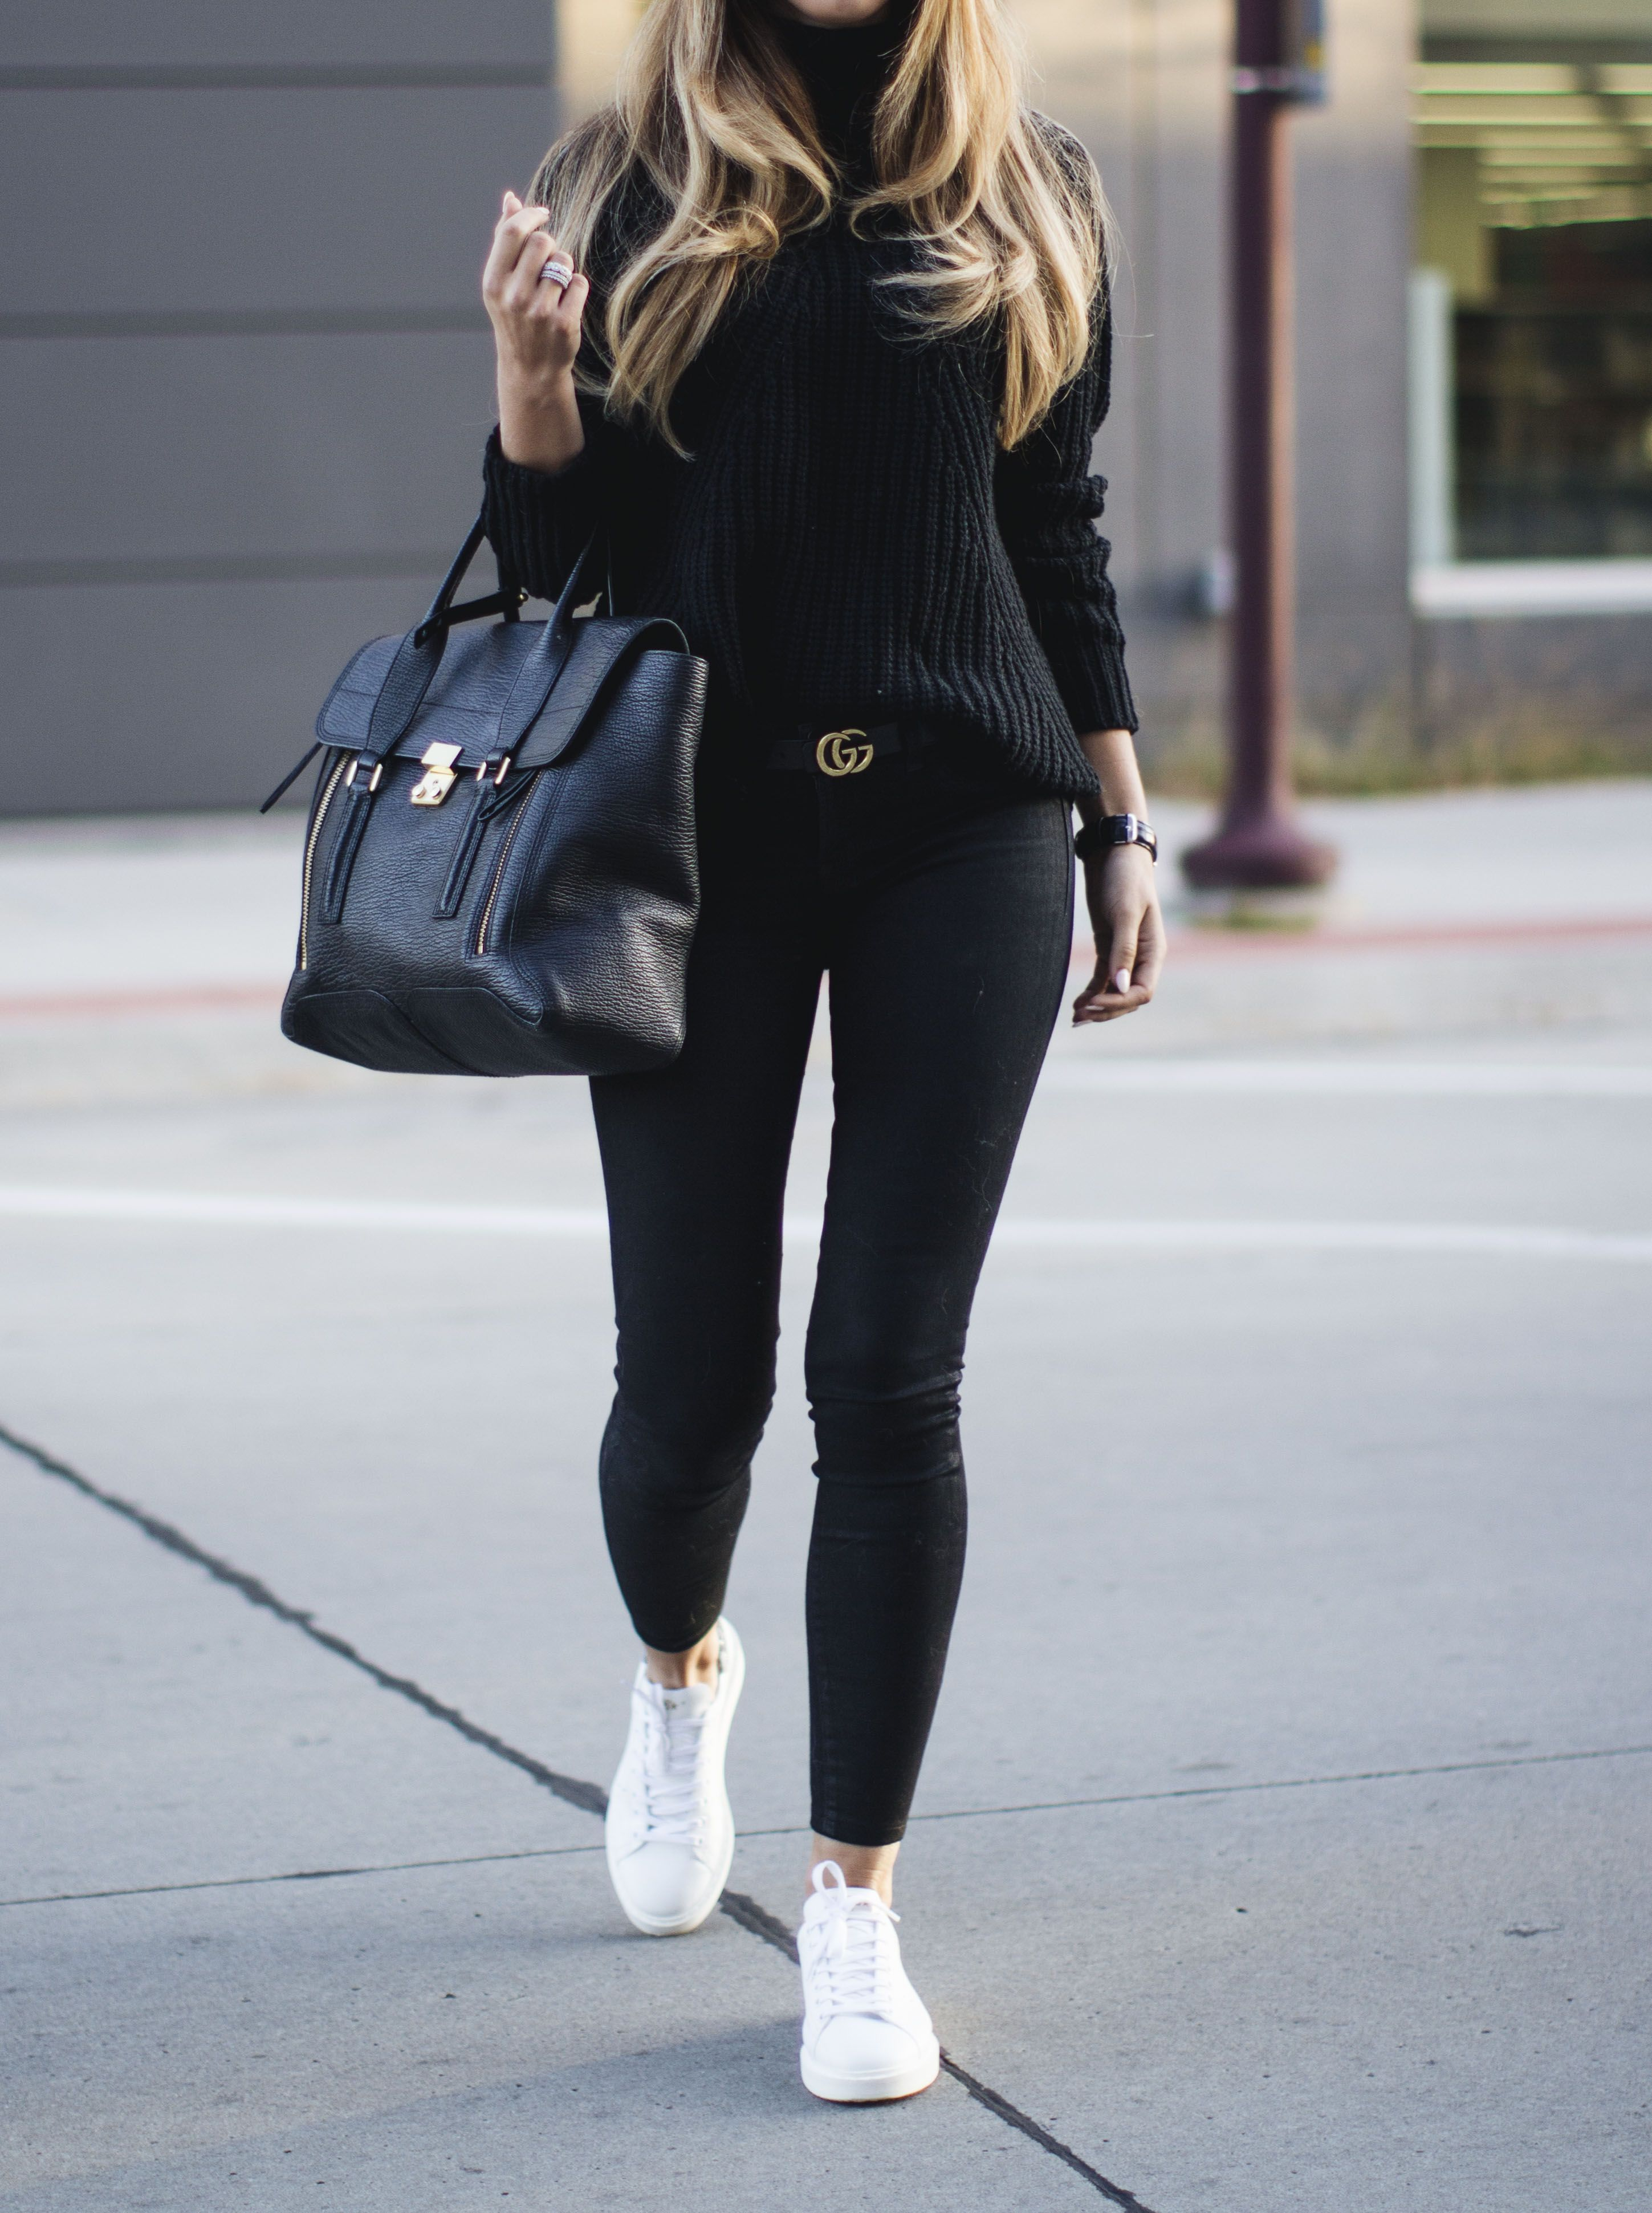 f46fa1a1c Black sweater + Gucci Belt + Coated jeans + White sneakers   Outfits ...